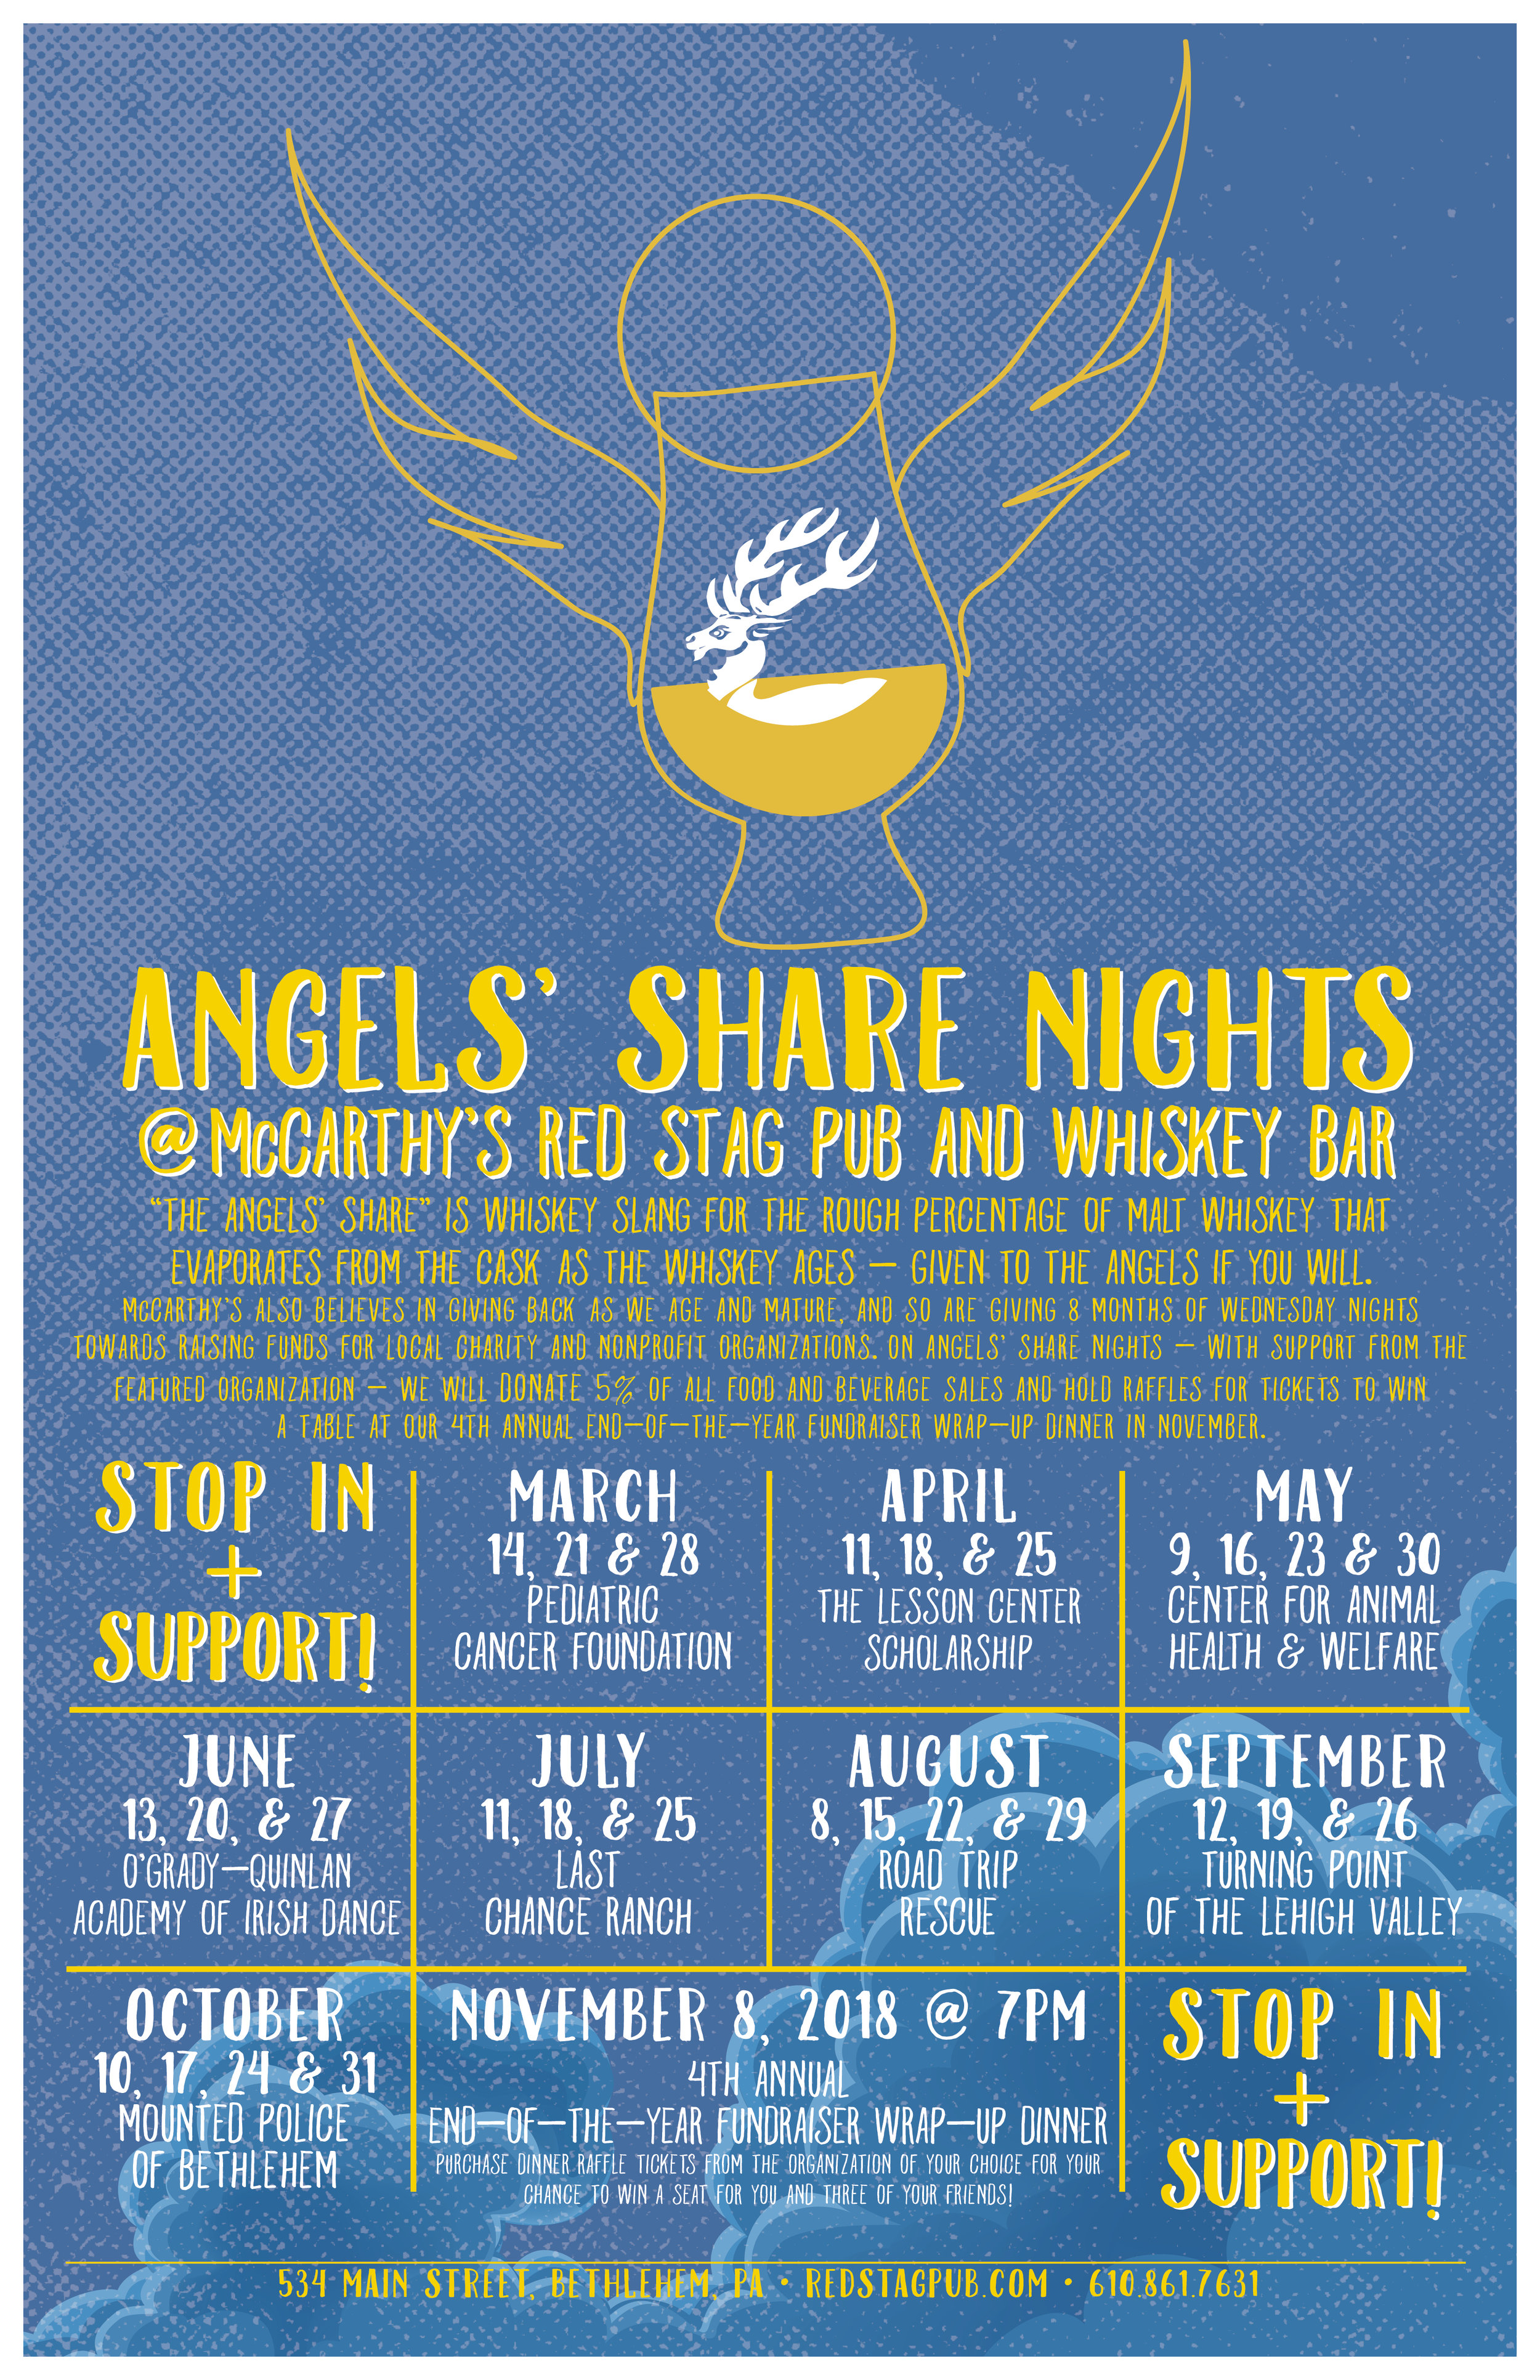 'ANGELS' SHARE NIGHTS' • 11x17 POSTER  CLIENT: McCARTHY'S RED STAG PUB AND WHISKEY BAR